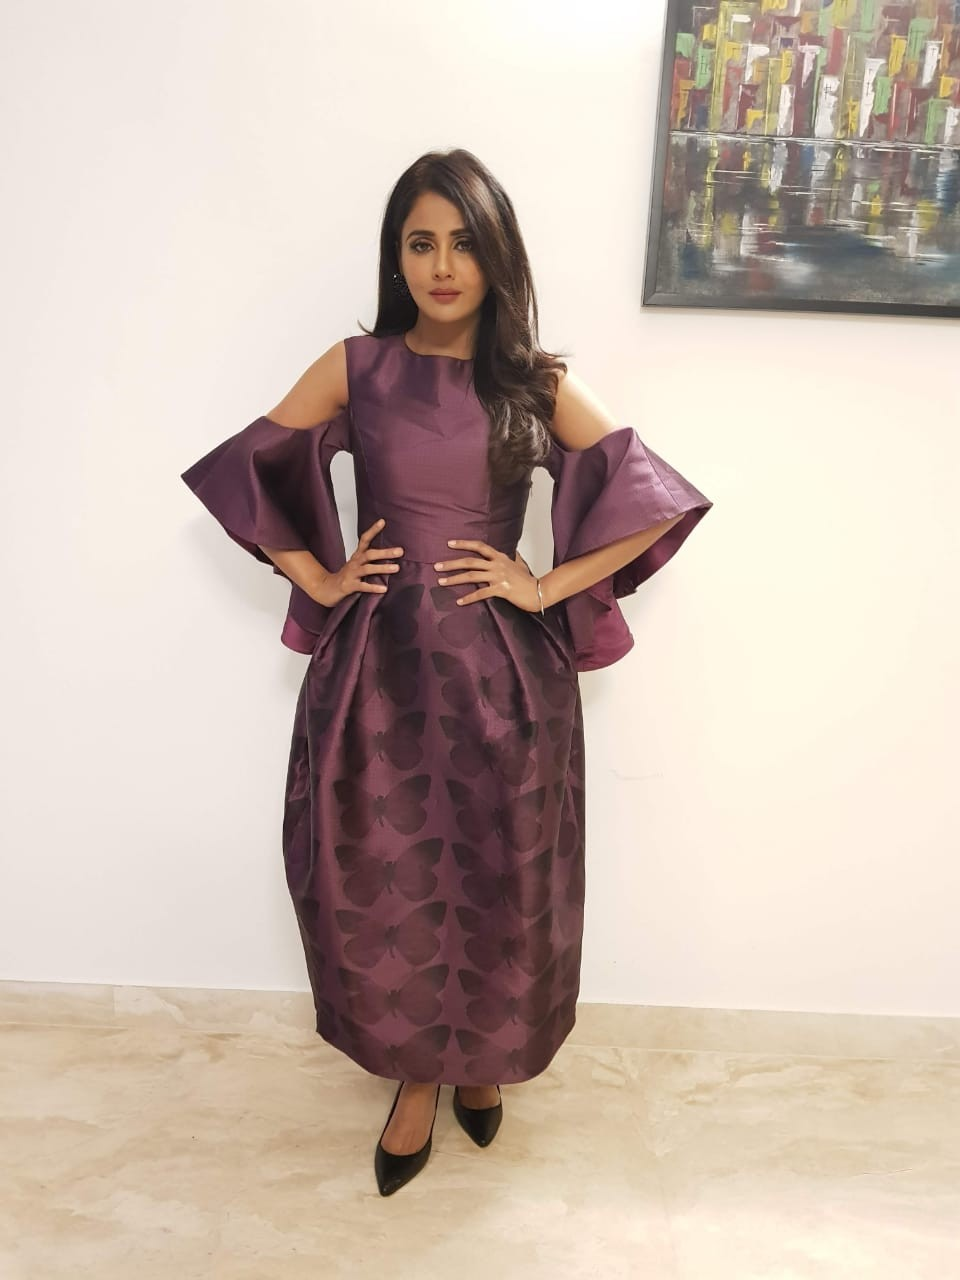 Parul Yadav,actress Parul Yadav,Parul Yadav latest pics,Parul Yadav latest images,Parul Yadav latest stills,Parul Yadav latest pictures,Parul Yadav latest photos,Business awards